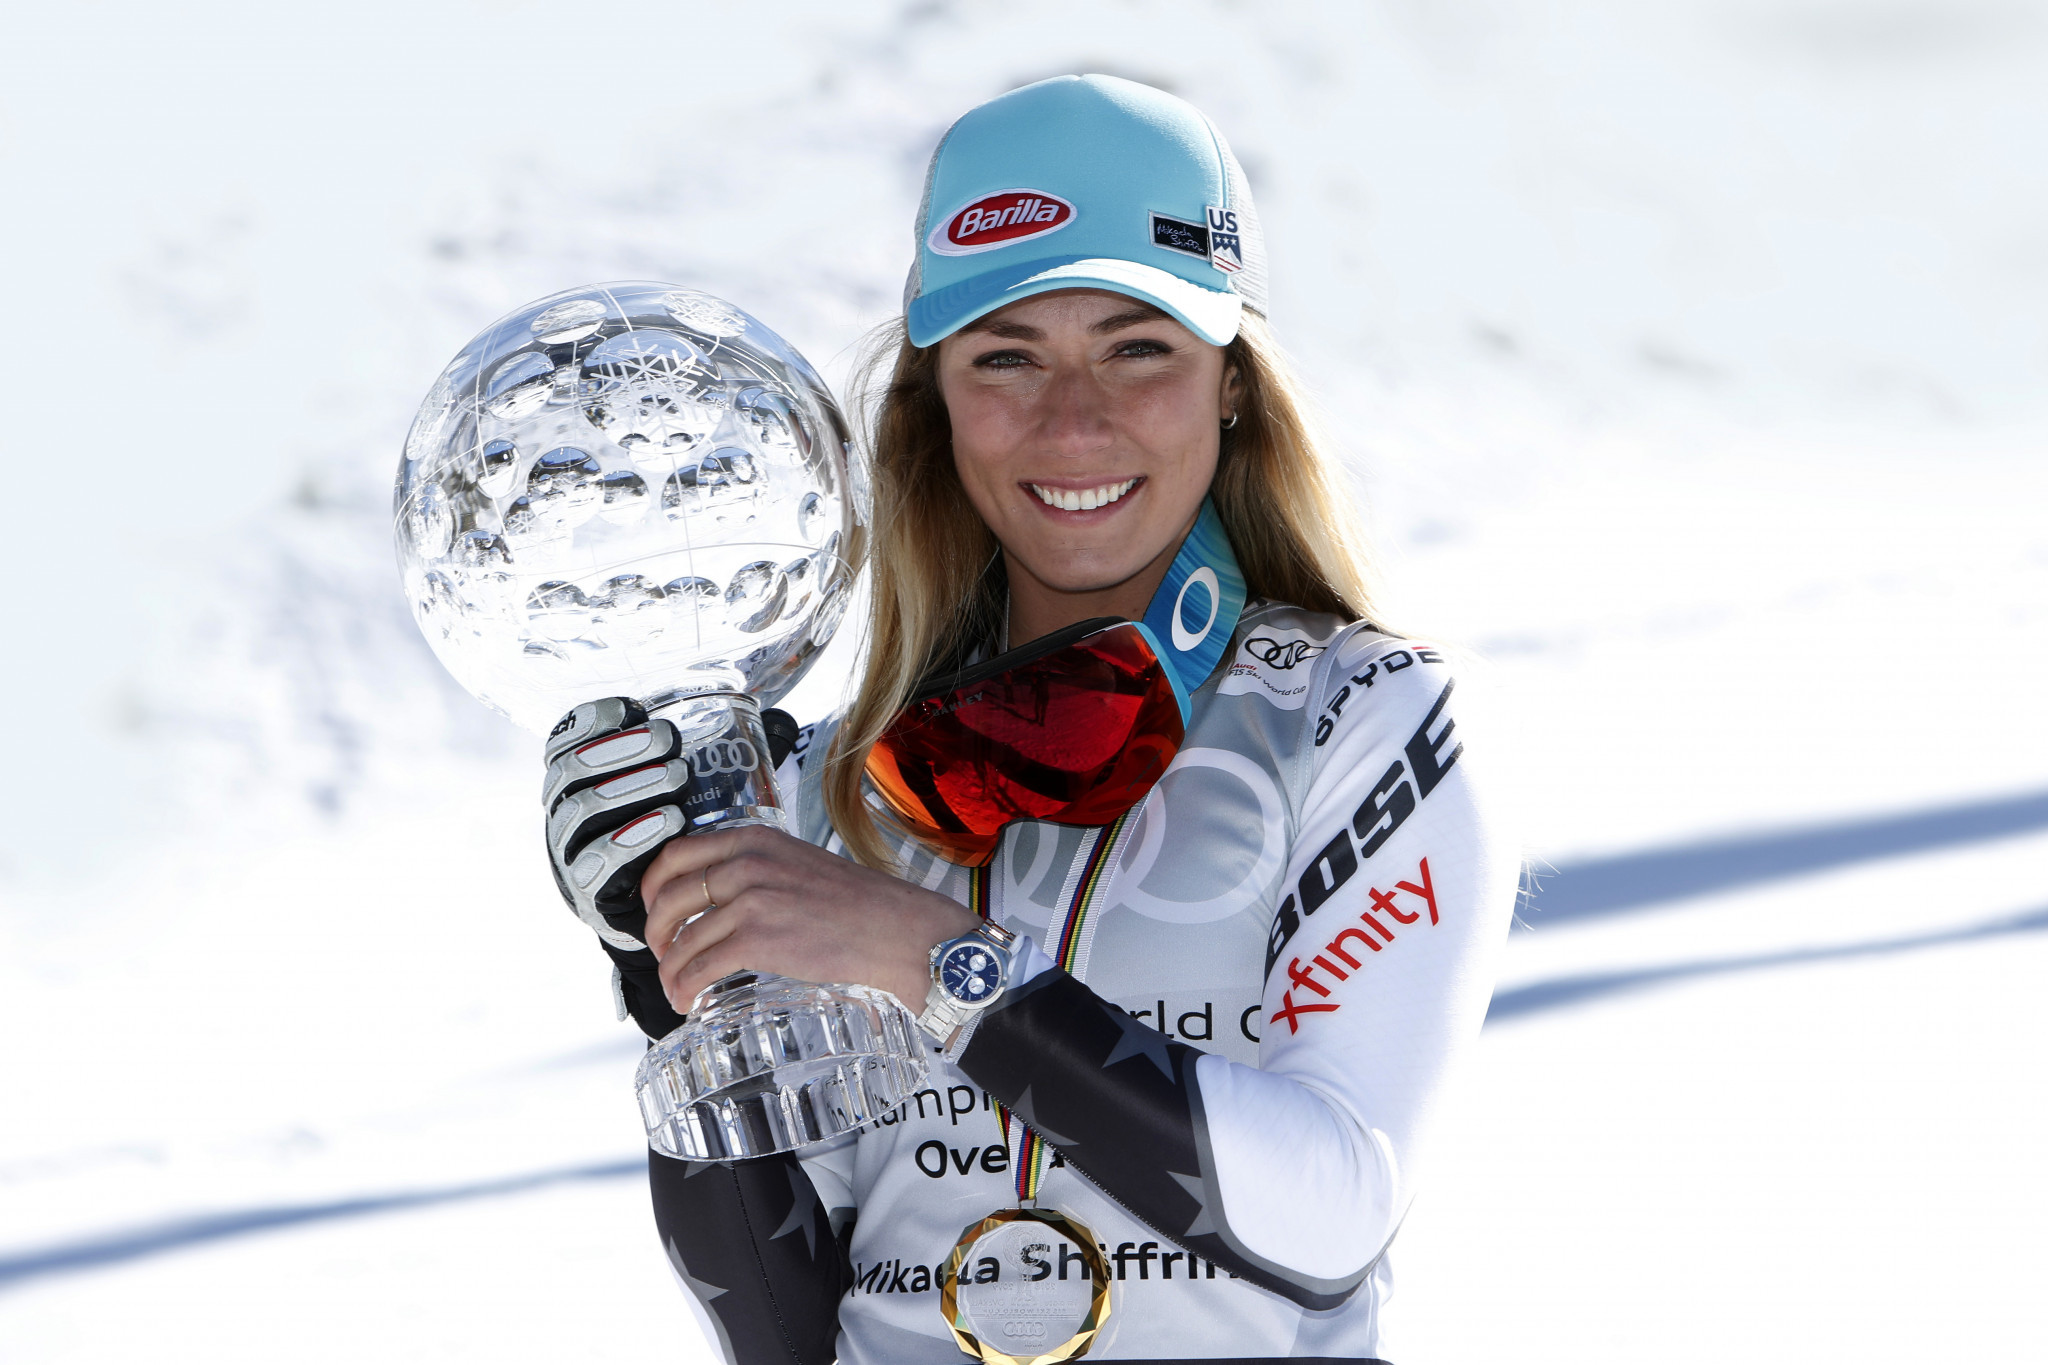 Mikaela Shiffrin received the women's USOC Best of March Team USA Award ©Getty Images